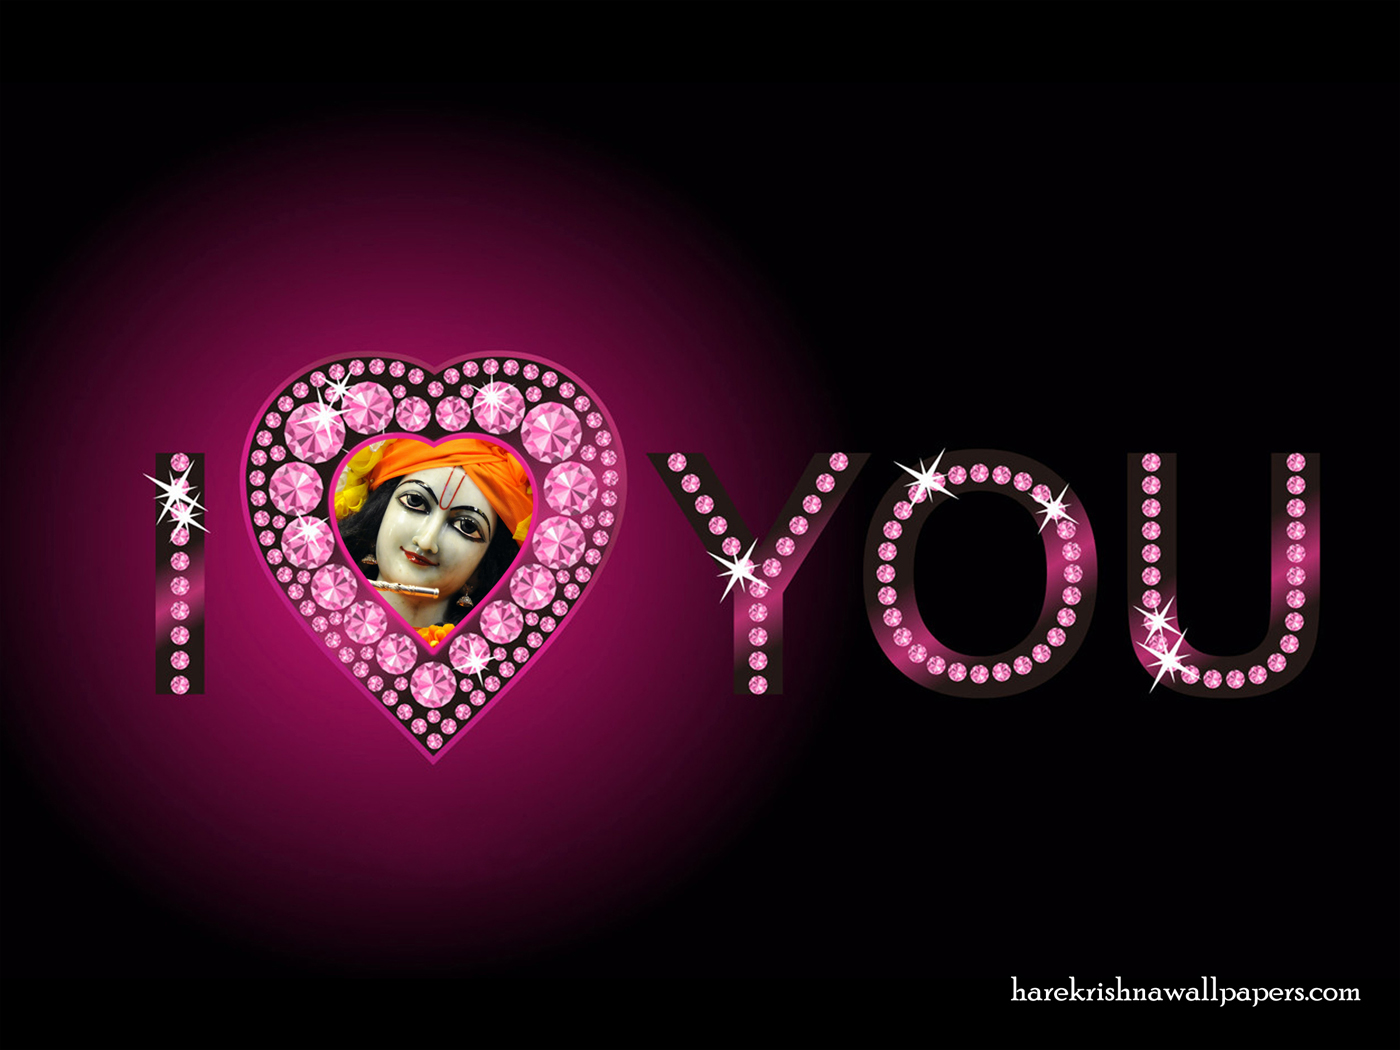 I Love You Gopinath Wallpaper (001) Size 1400x1050 Download